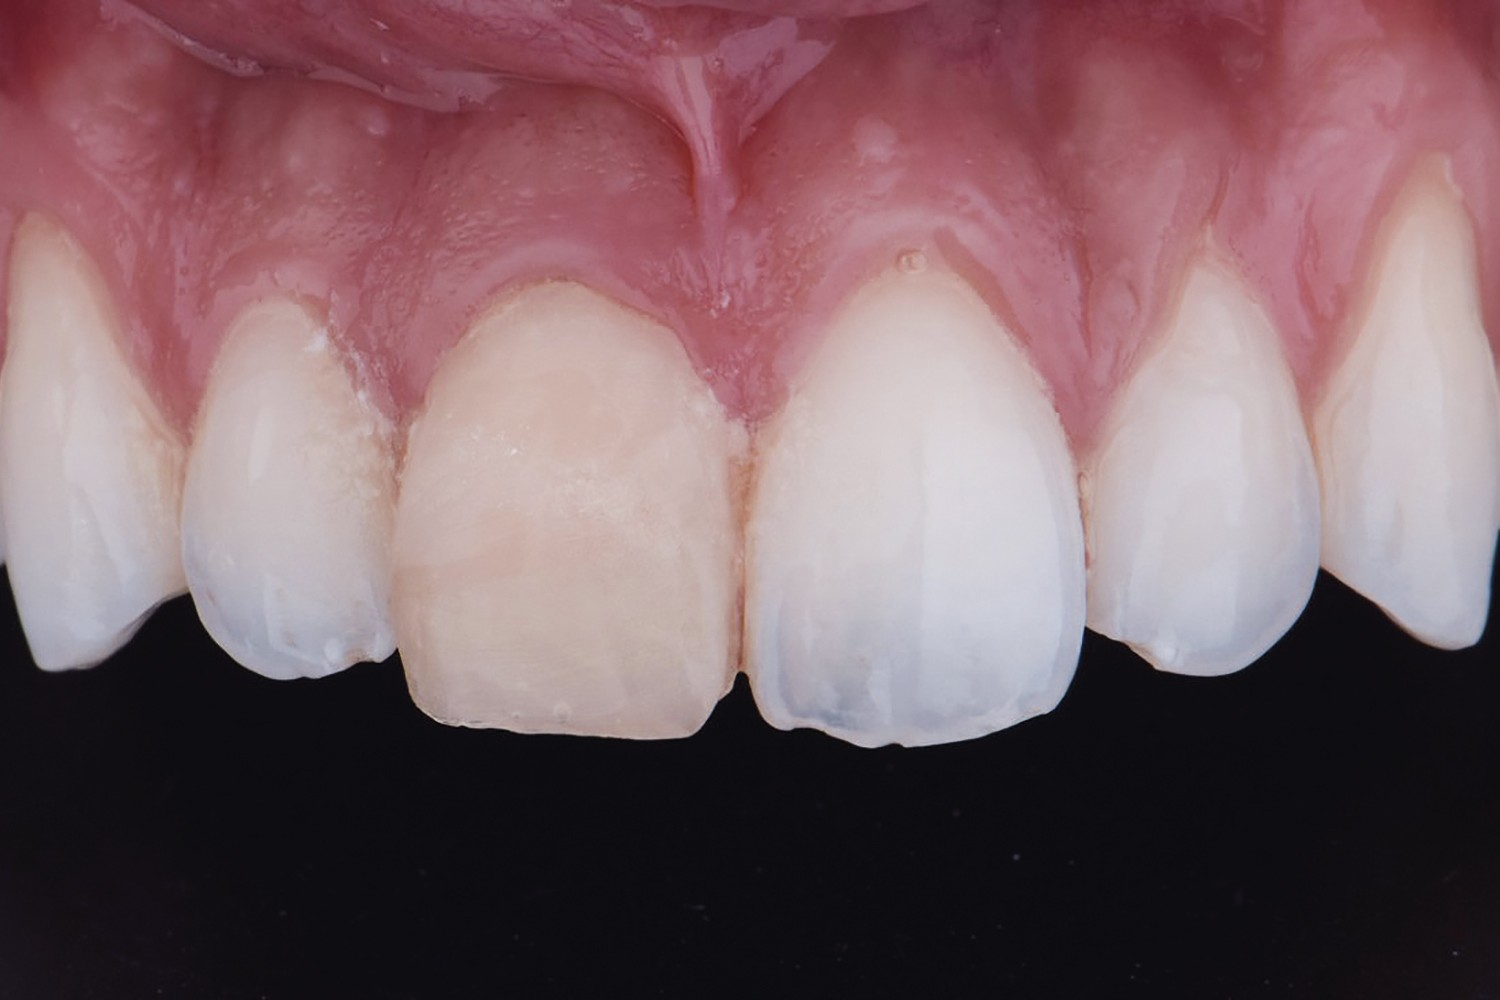 Extensive fracture of an anterior vital tooth: a biological and aesthetic challenge